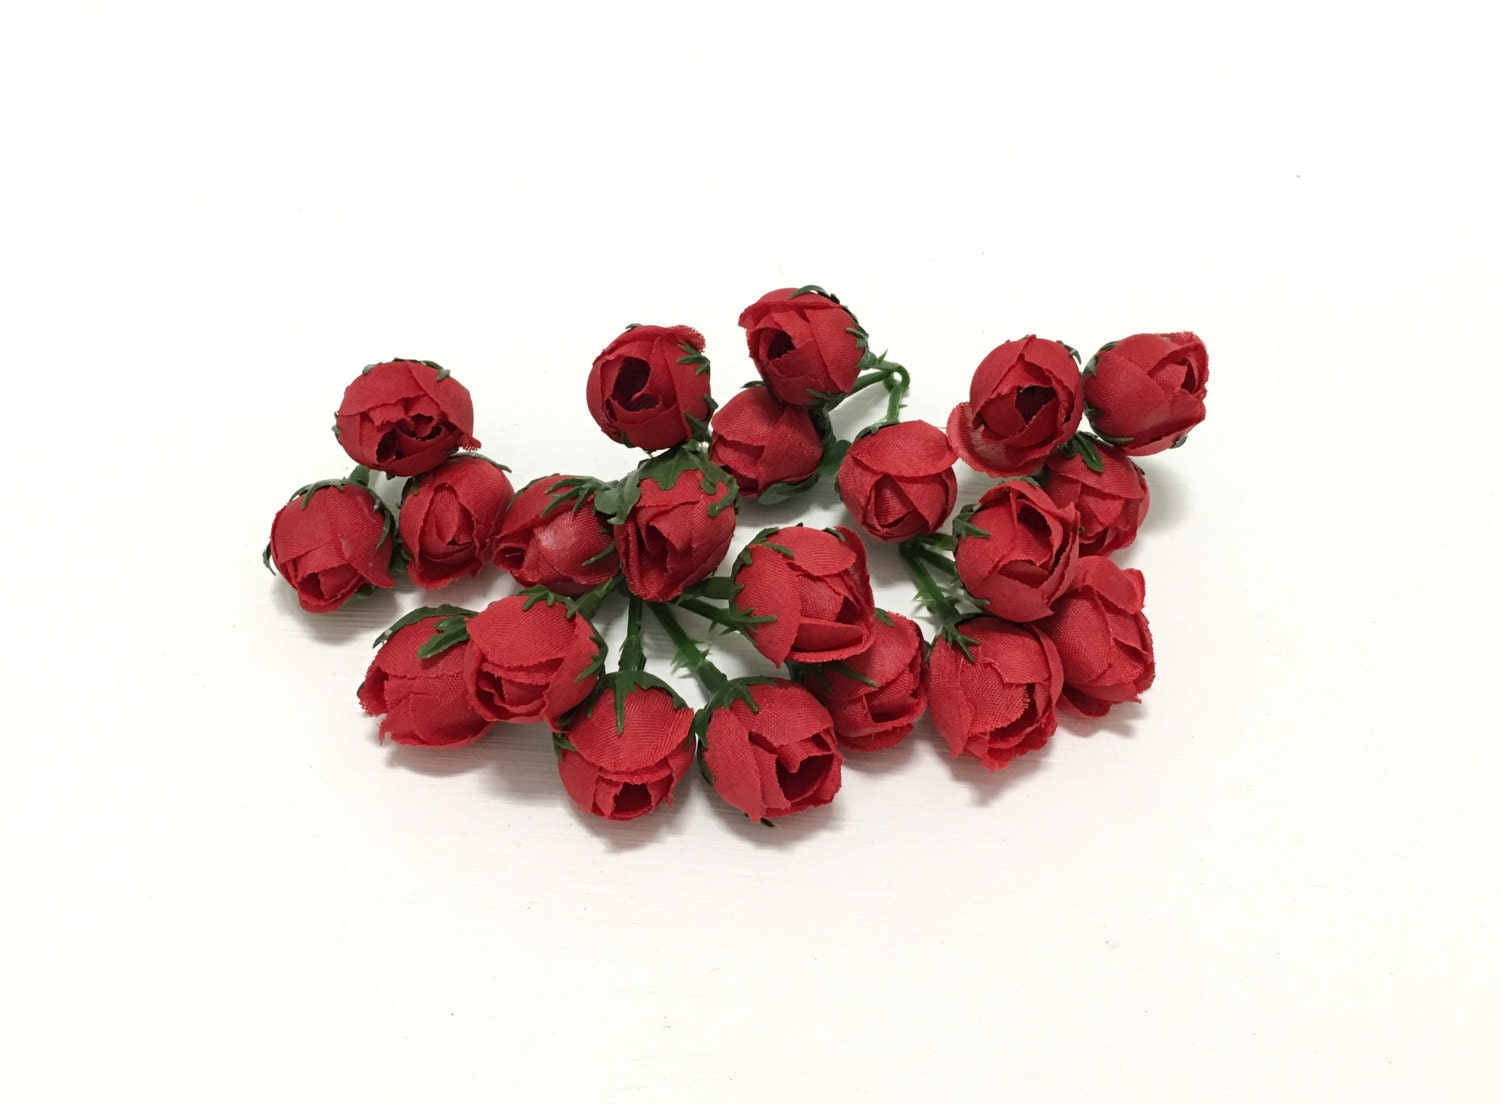 21 tiny red mini rose buds very small flowers artificial flowers sold by blissfulsilks mightylinksfo